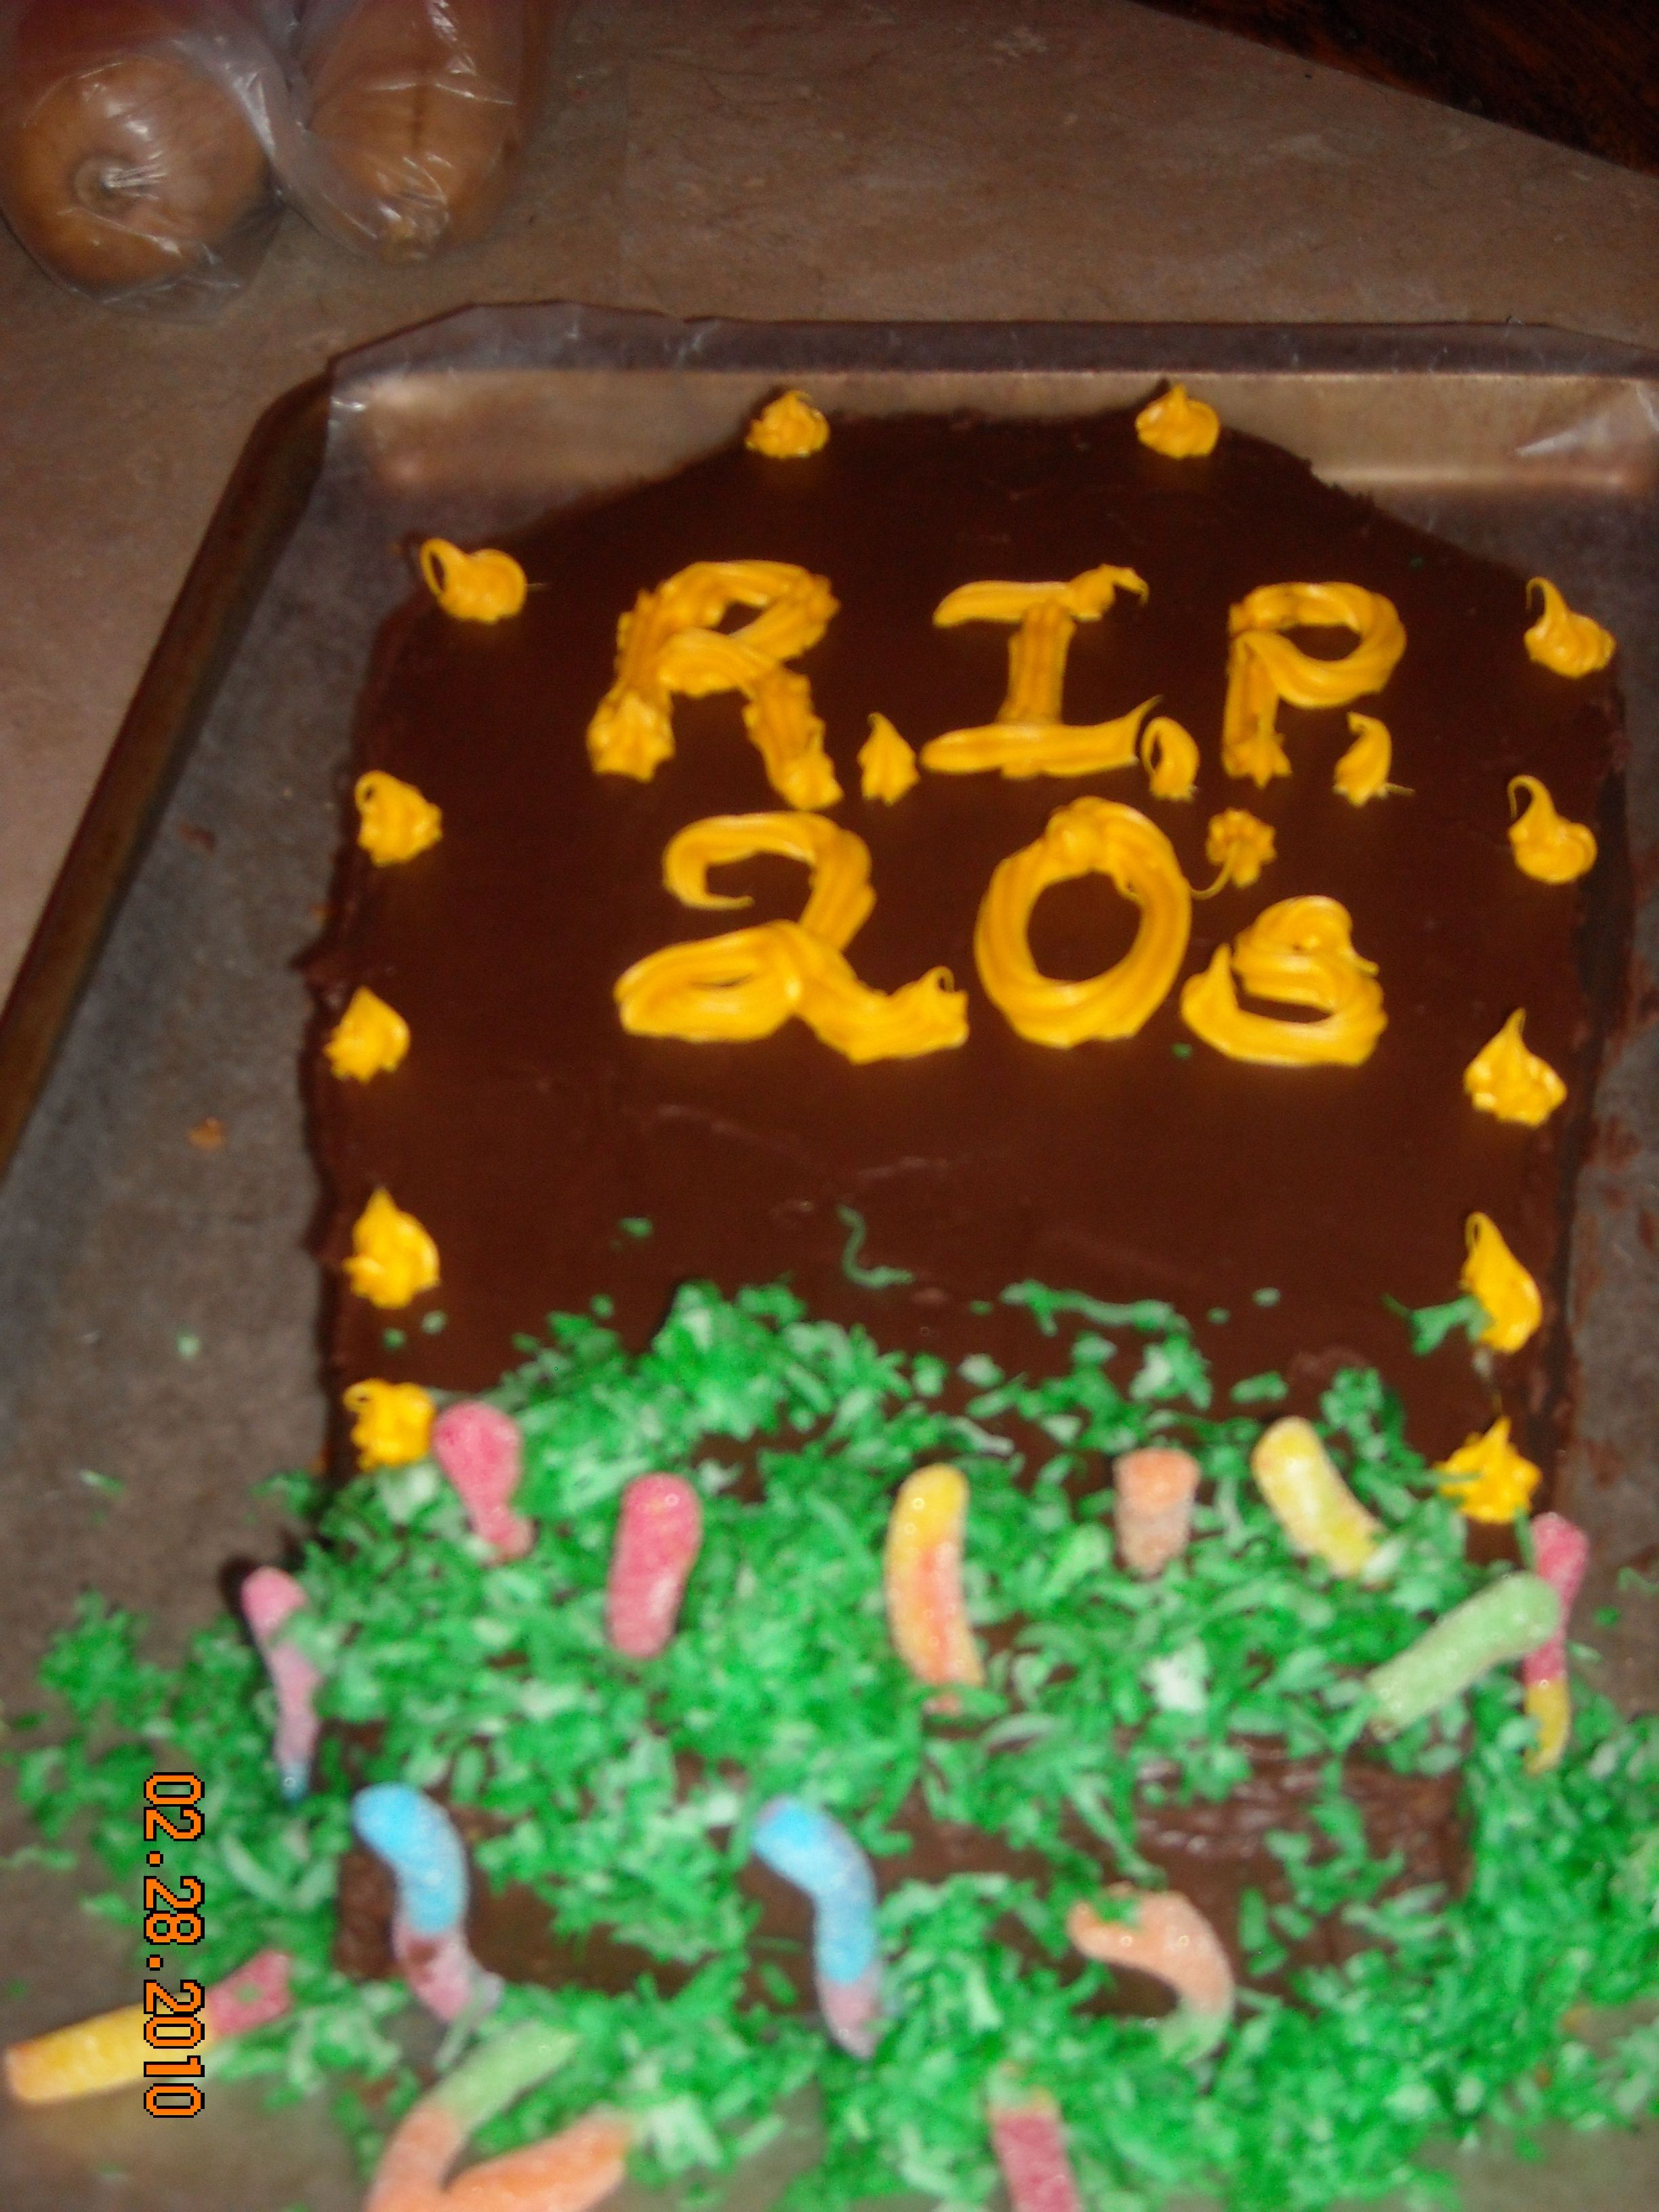 Turning 30 A Great Idea For Good Laugha Coffin Cake I Used Dyed Coconut And Gummy Worms At The Bottom To Add Effect